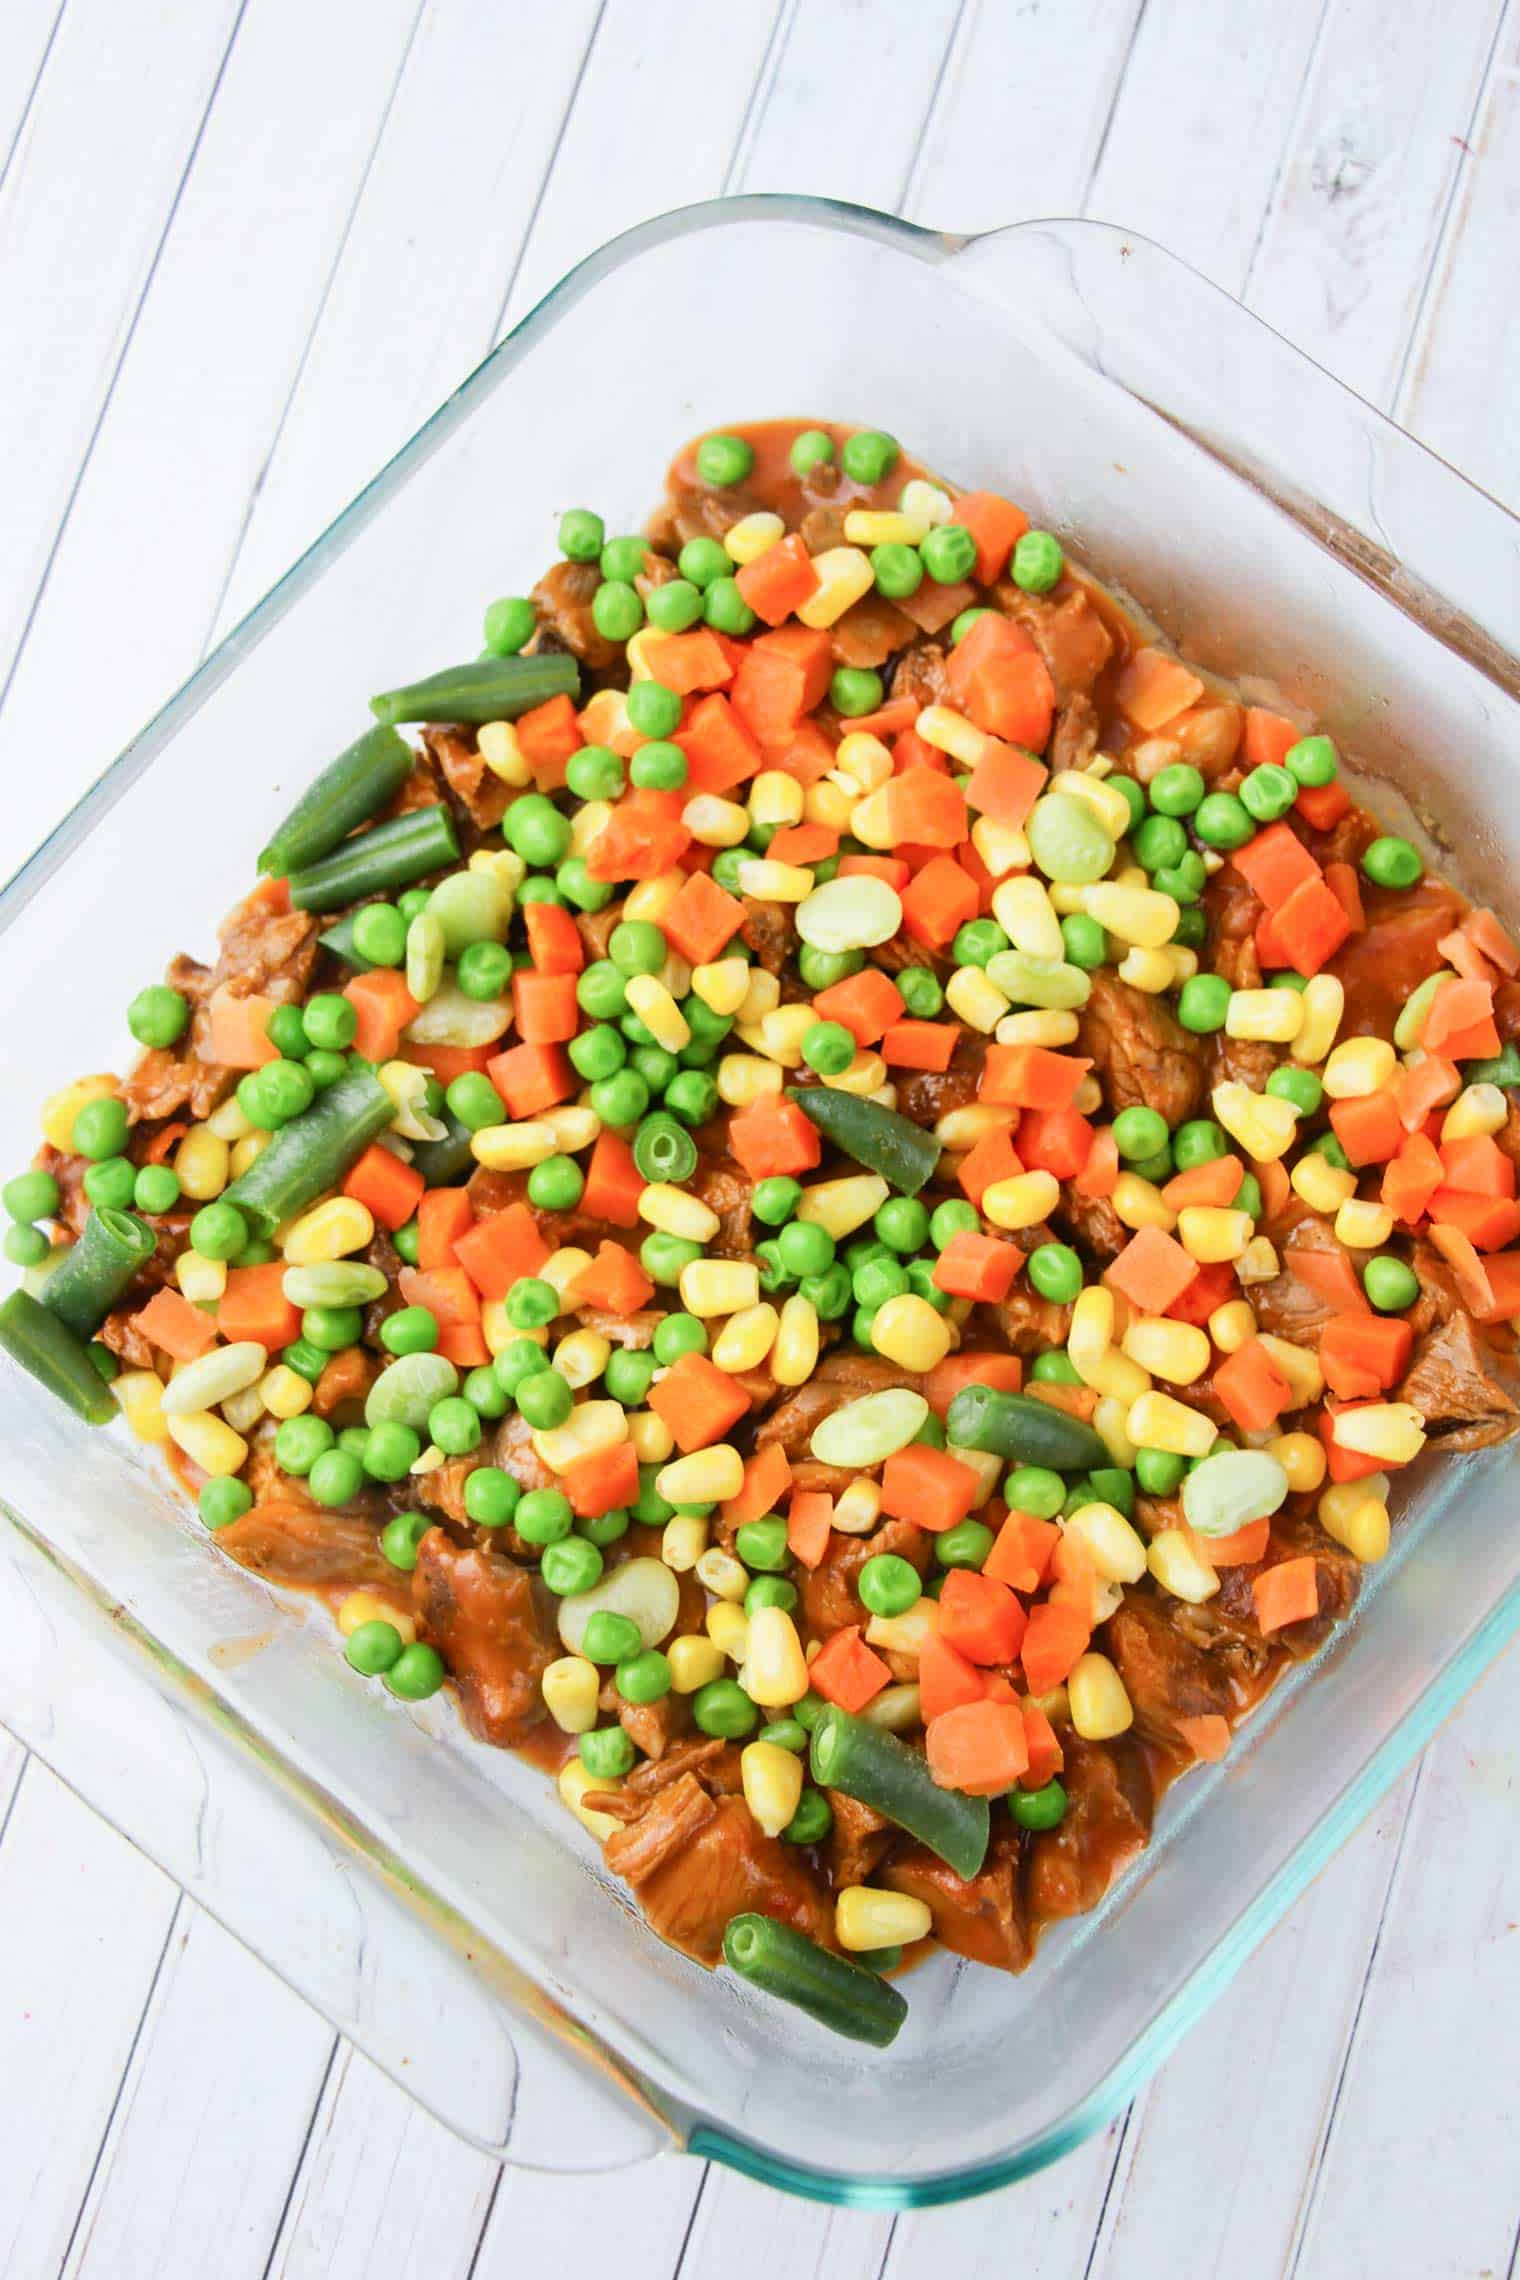 veggies added as second layer of shepherd's pie